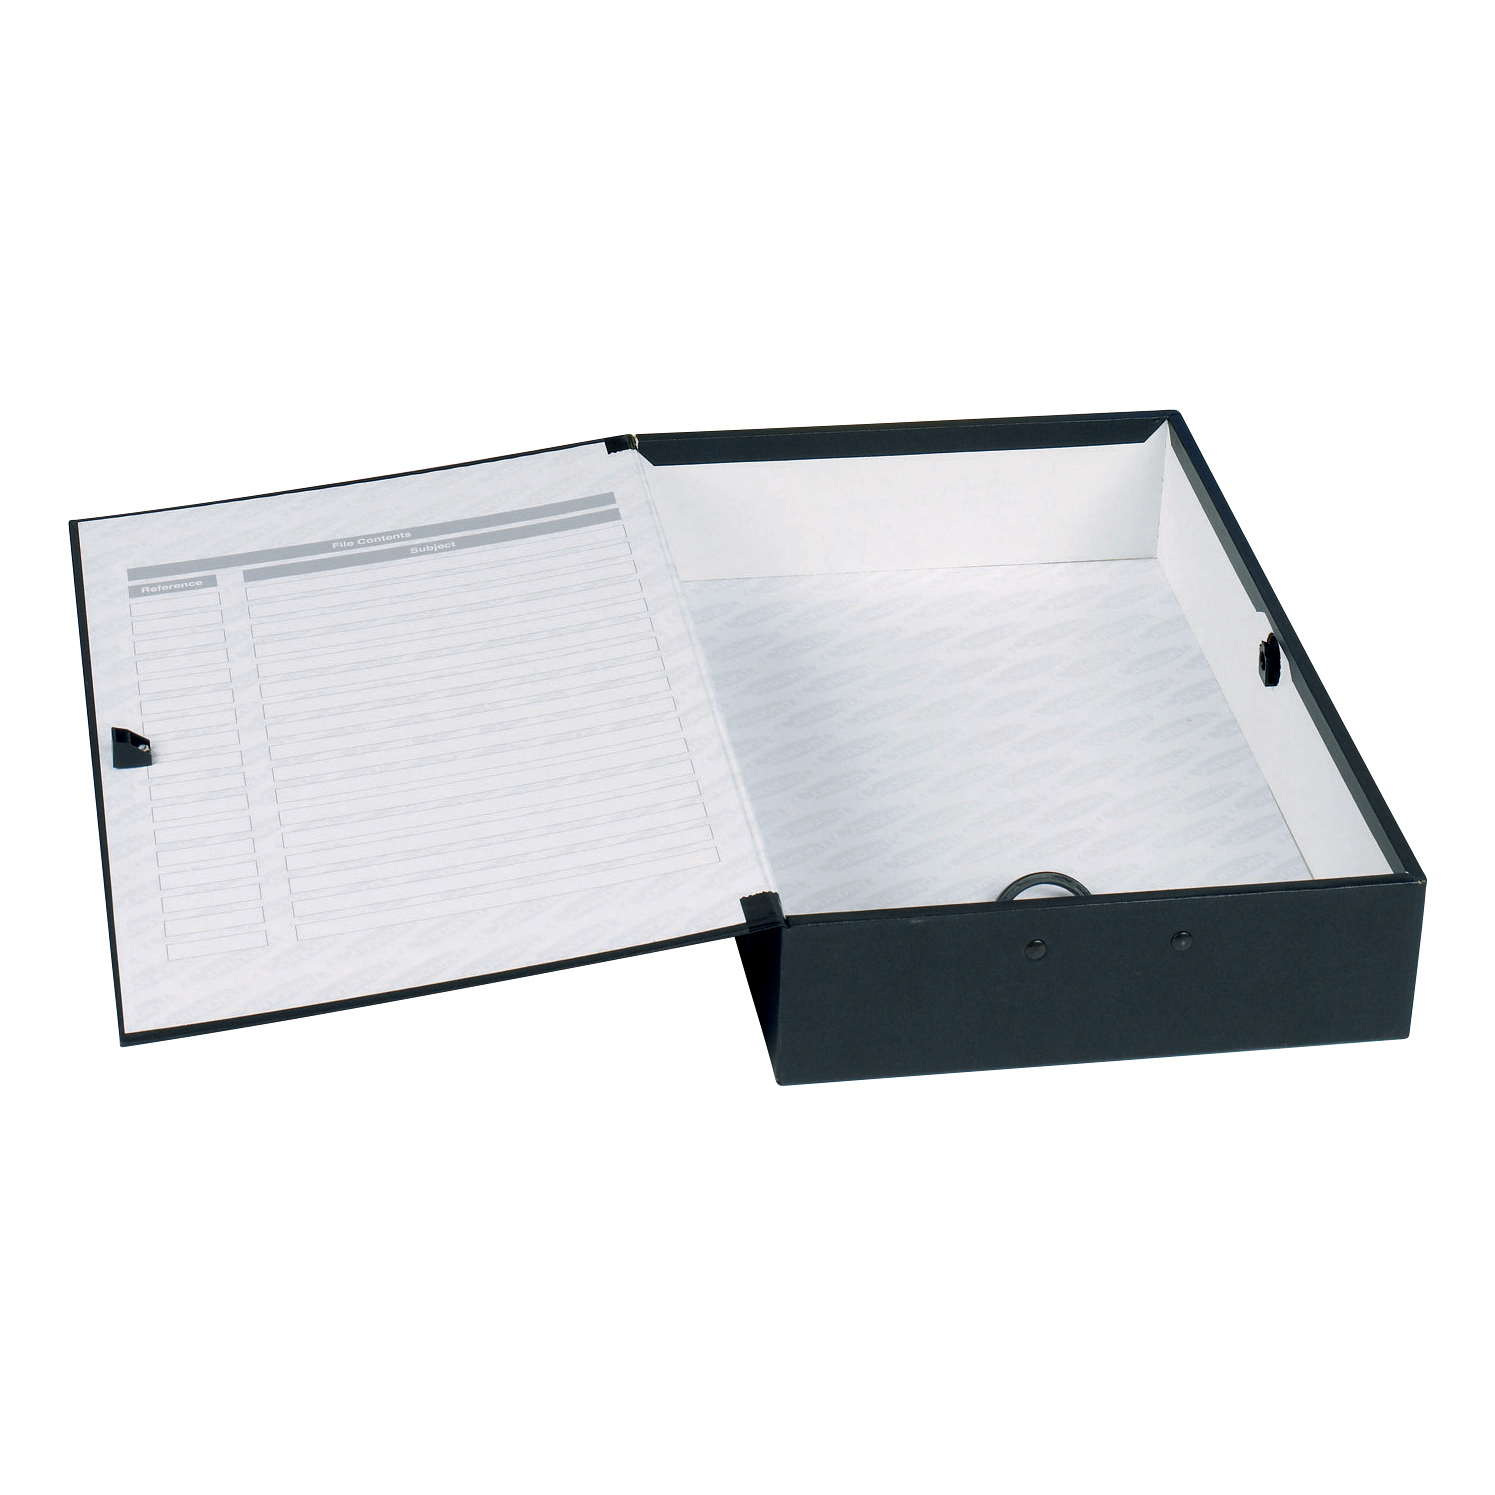 Concord Classic Box File 75mm Spine Foolscap Black Ref C1282 [Pack 5]